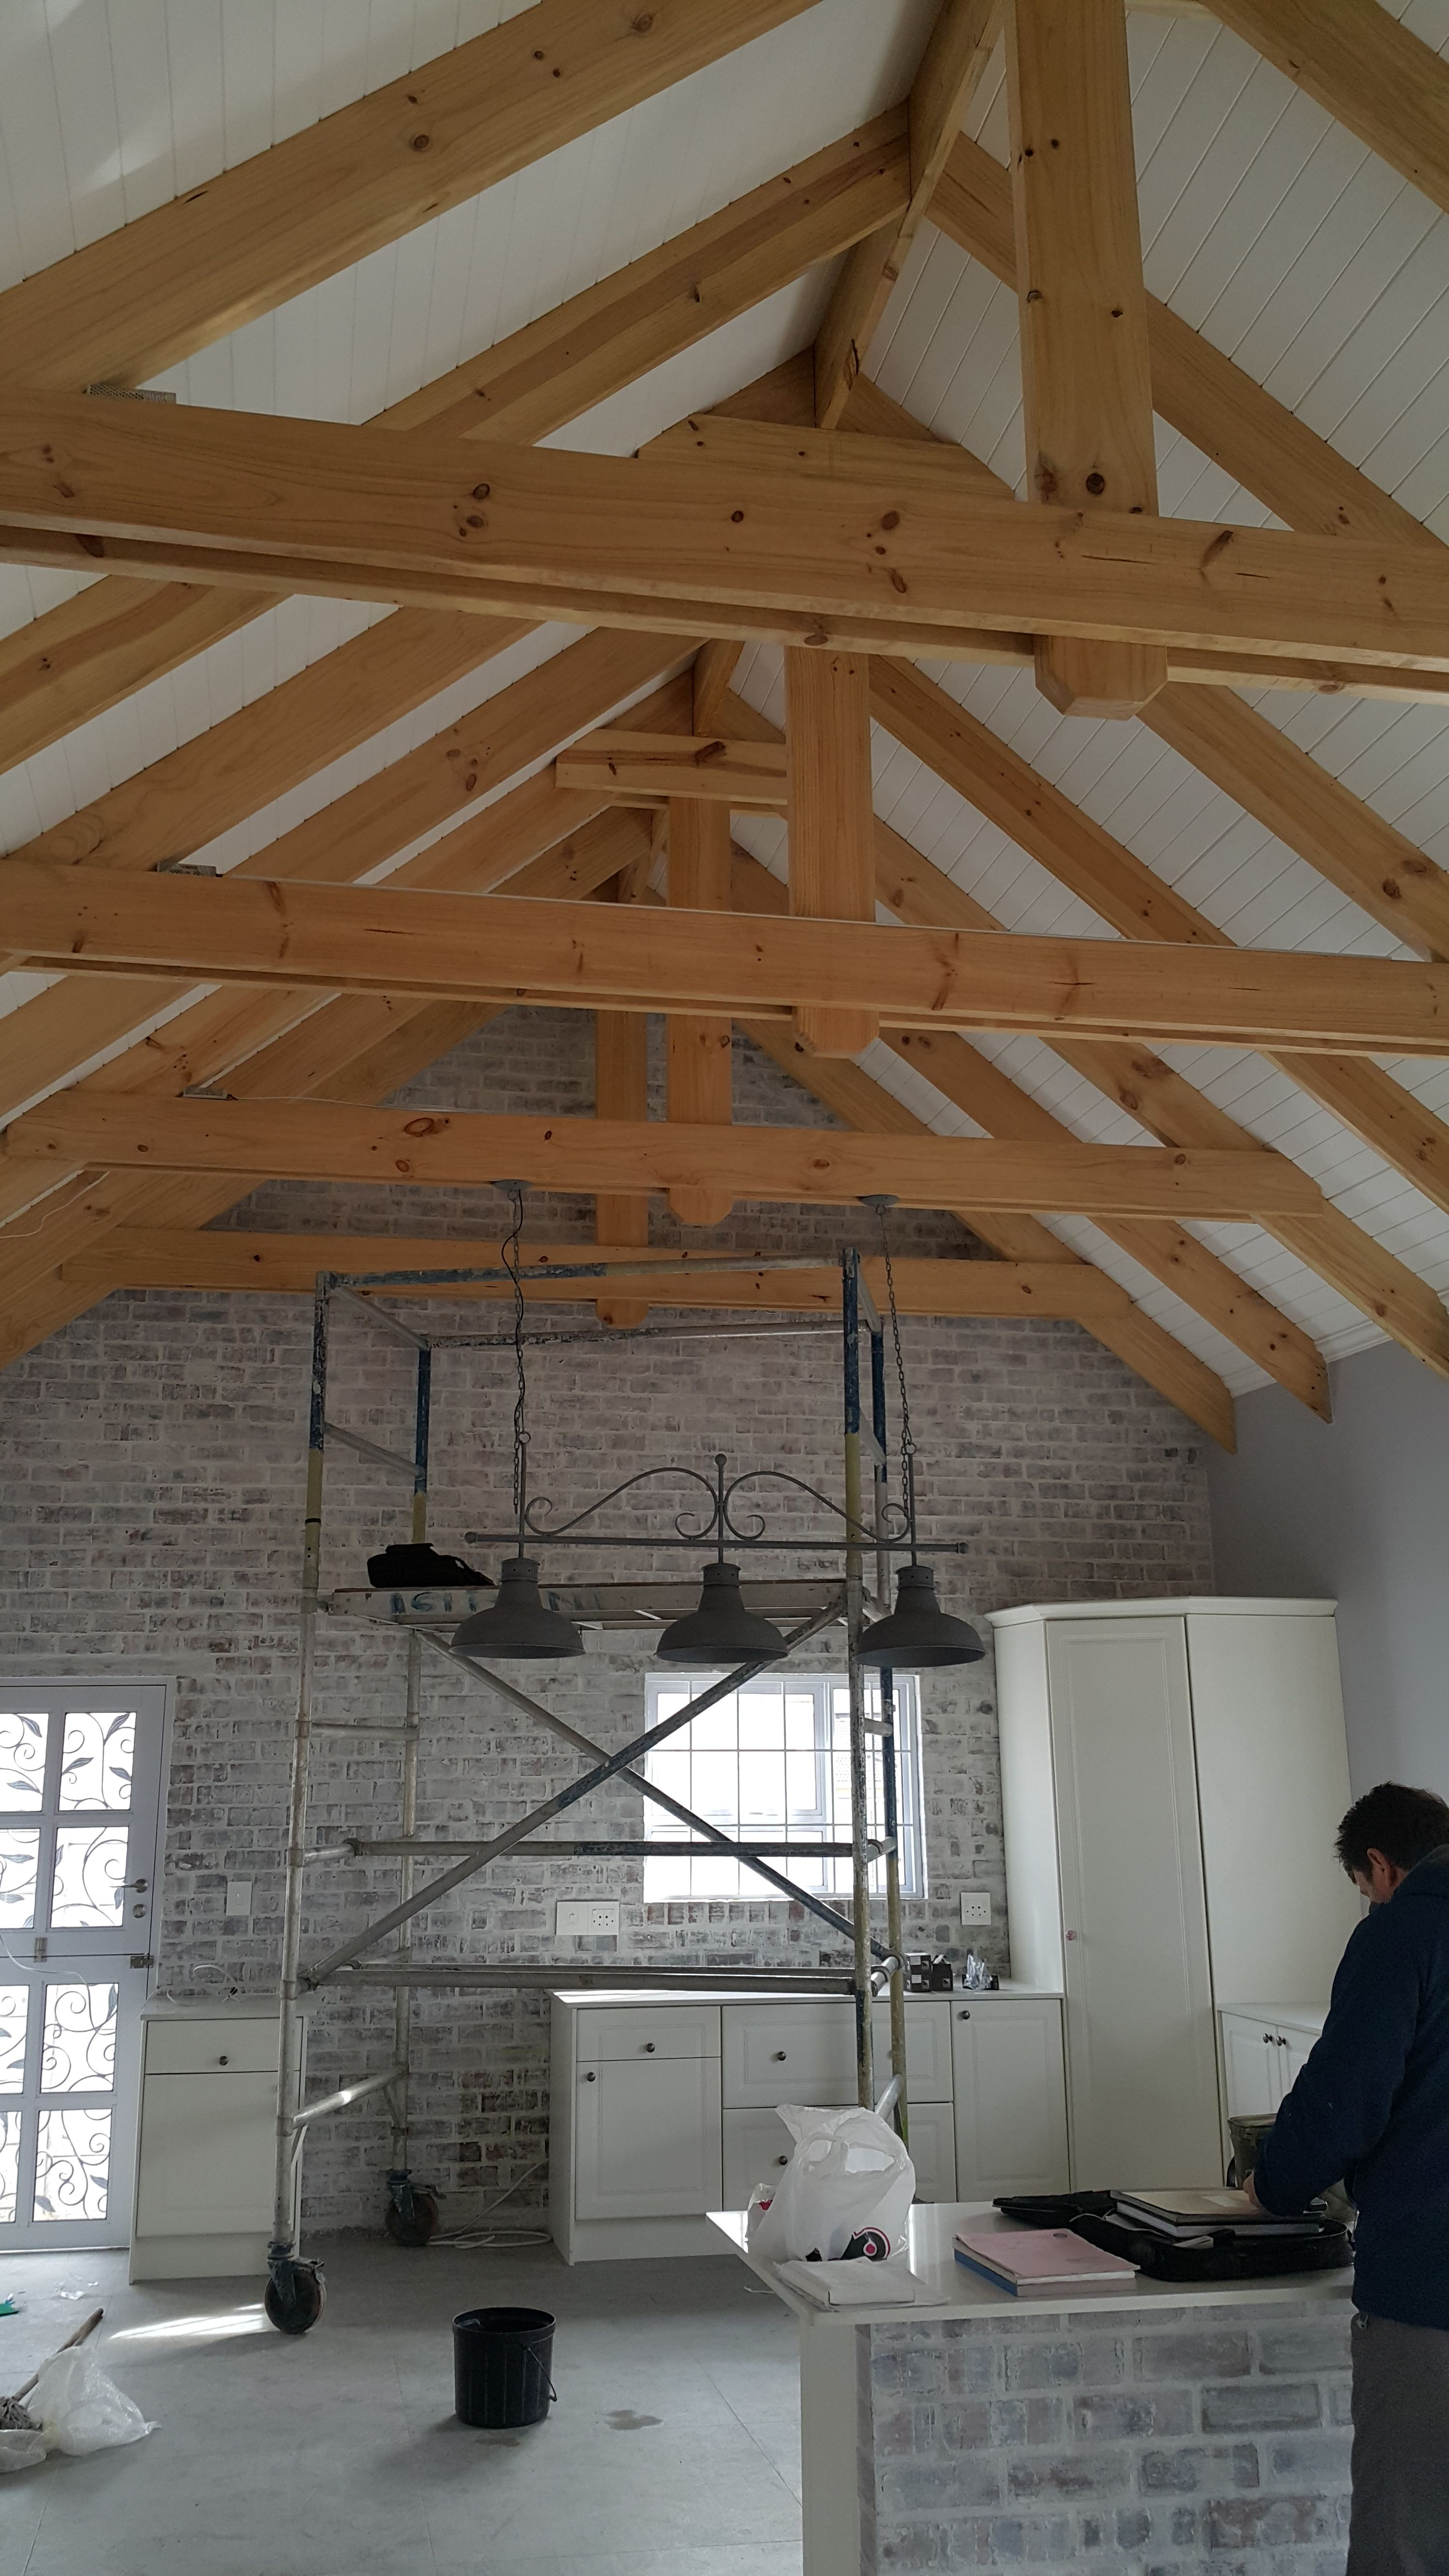 Another Stunning Ceiling Of An Exposed Ceiling Fitted With